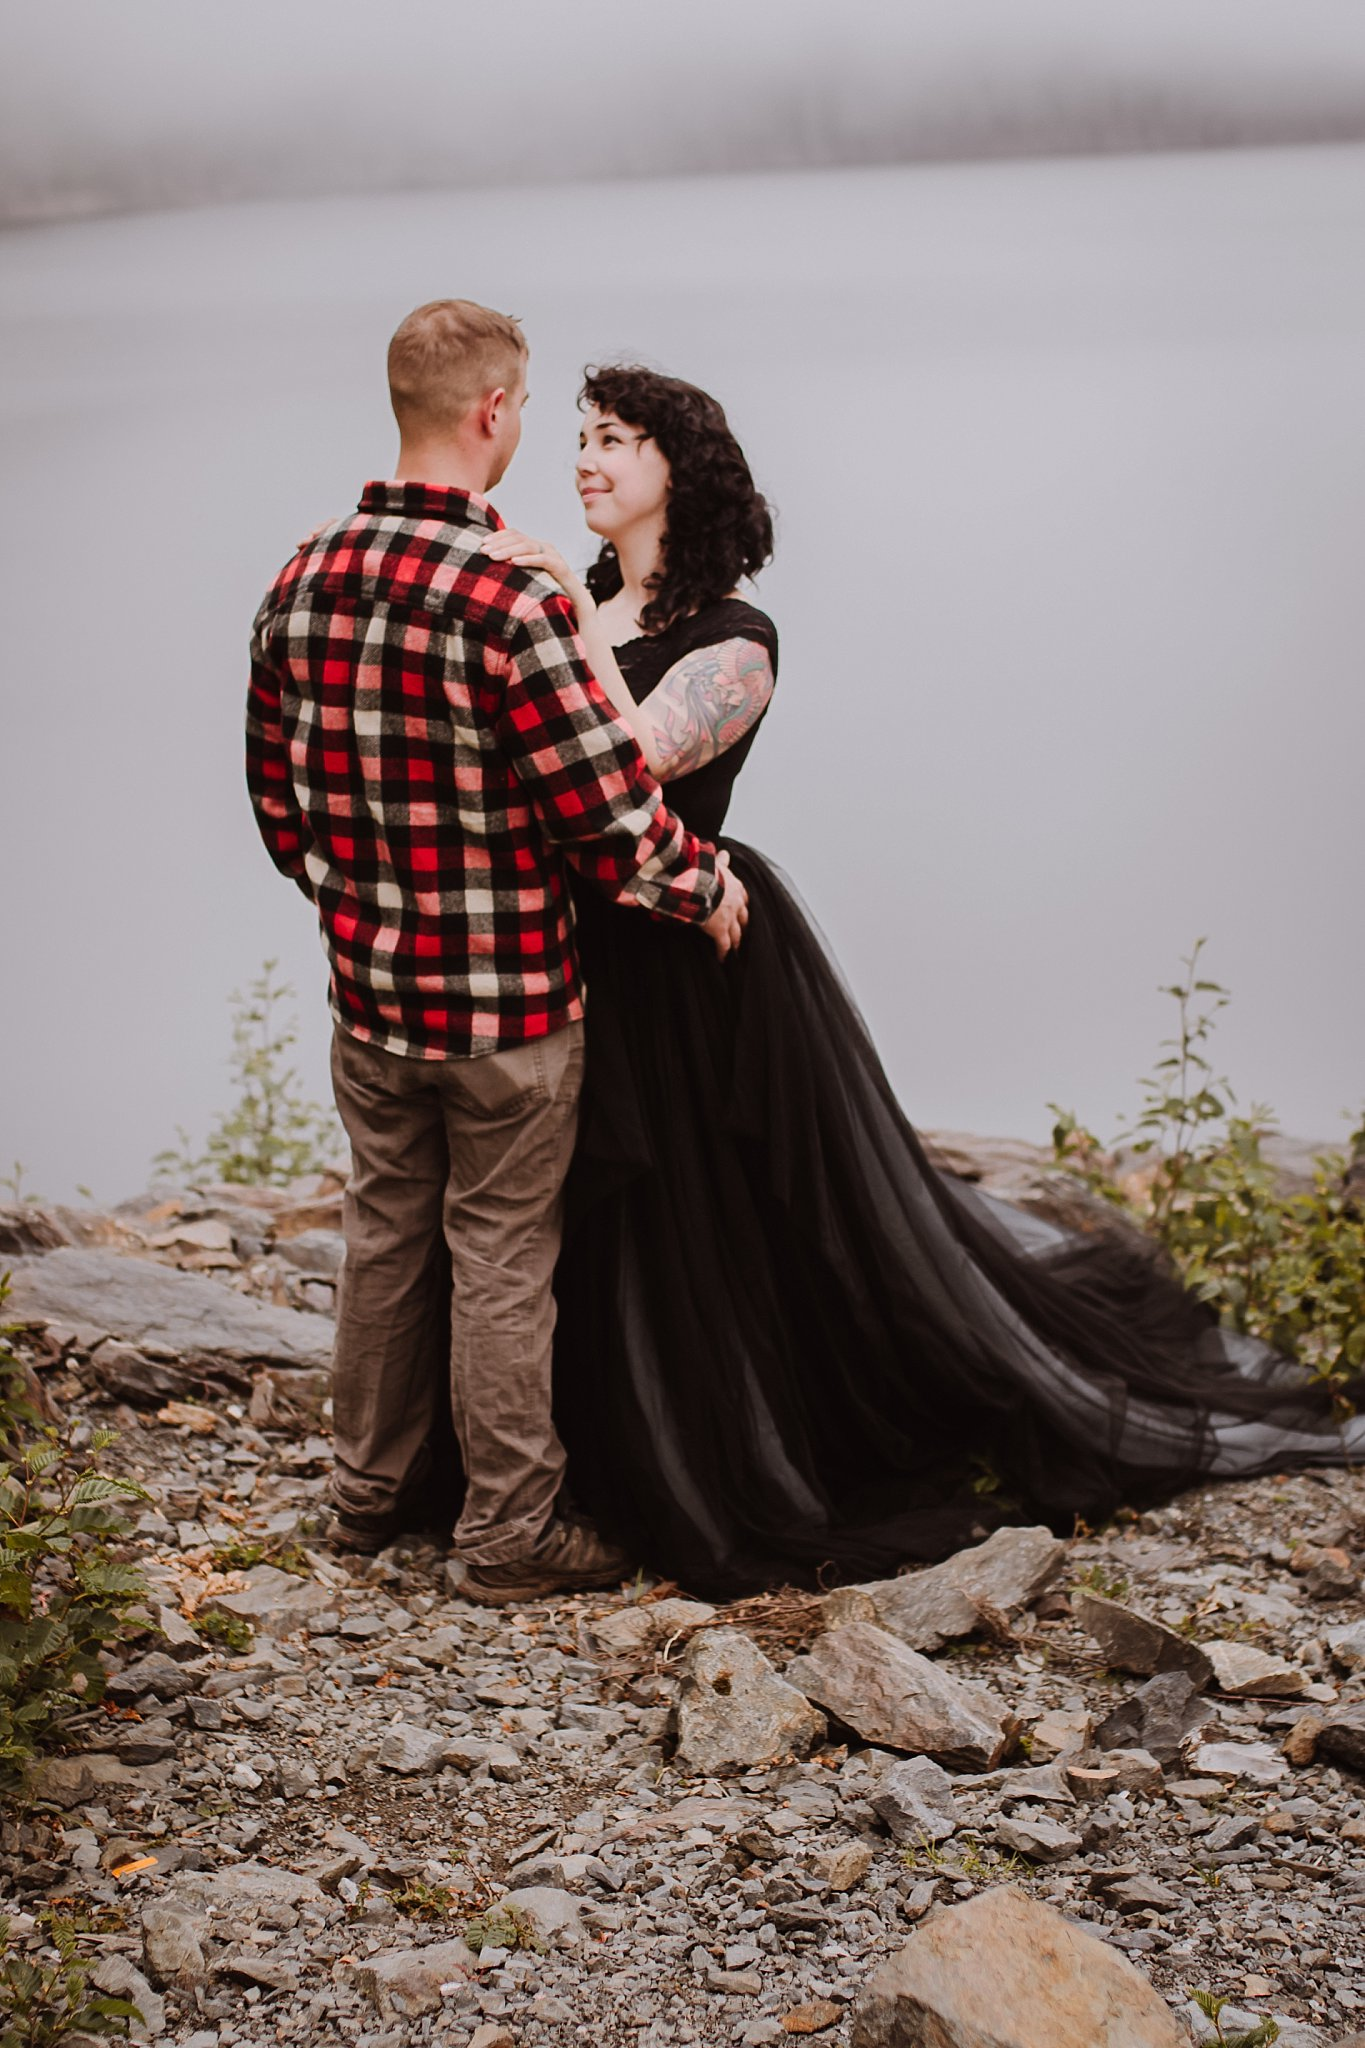 Couples, Engagements, & Elopements - Starting At $300